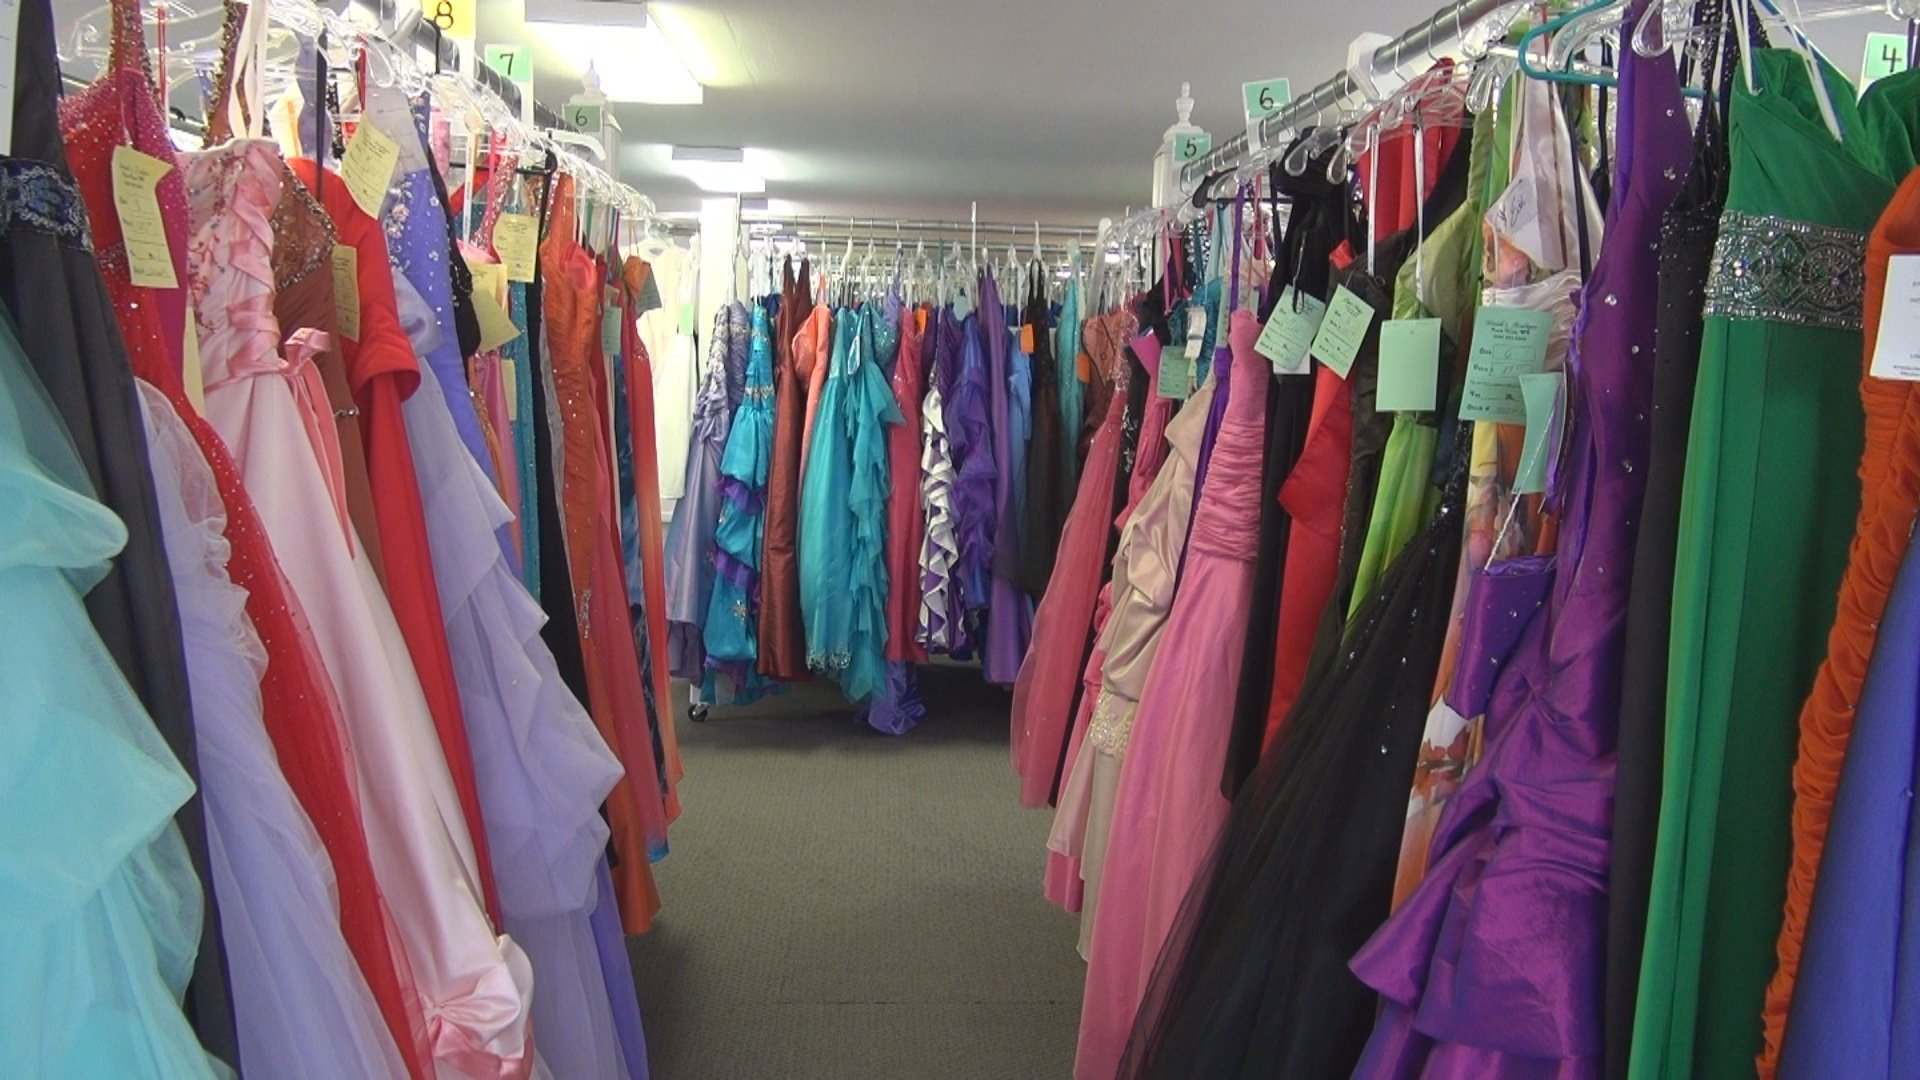 Wedding Prom Dress Rentals dinahs boutique offers reasonable prices and rental prom dress dresses